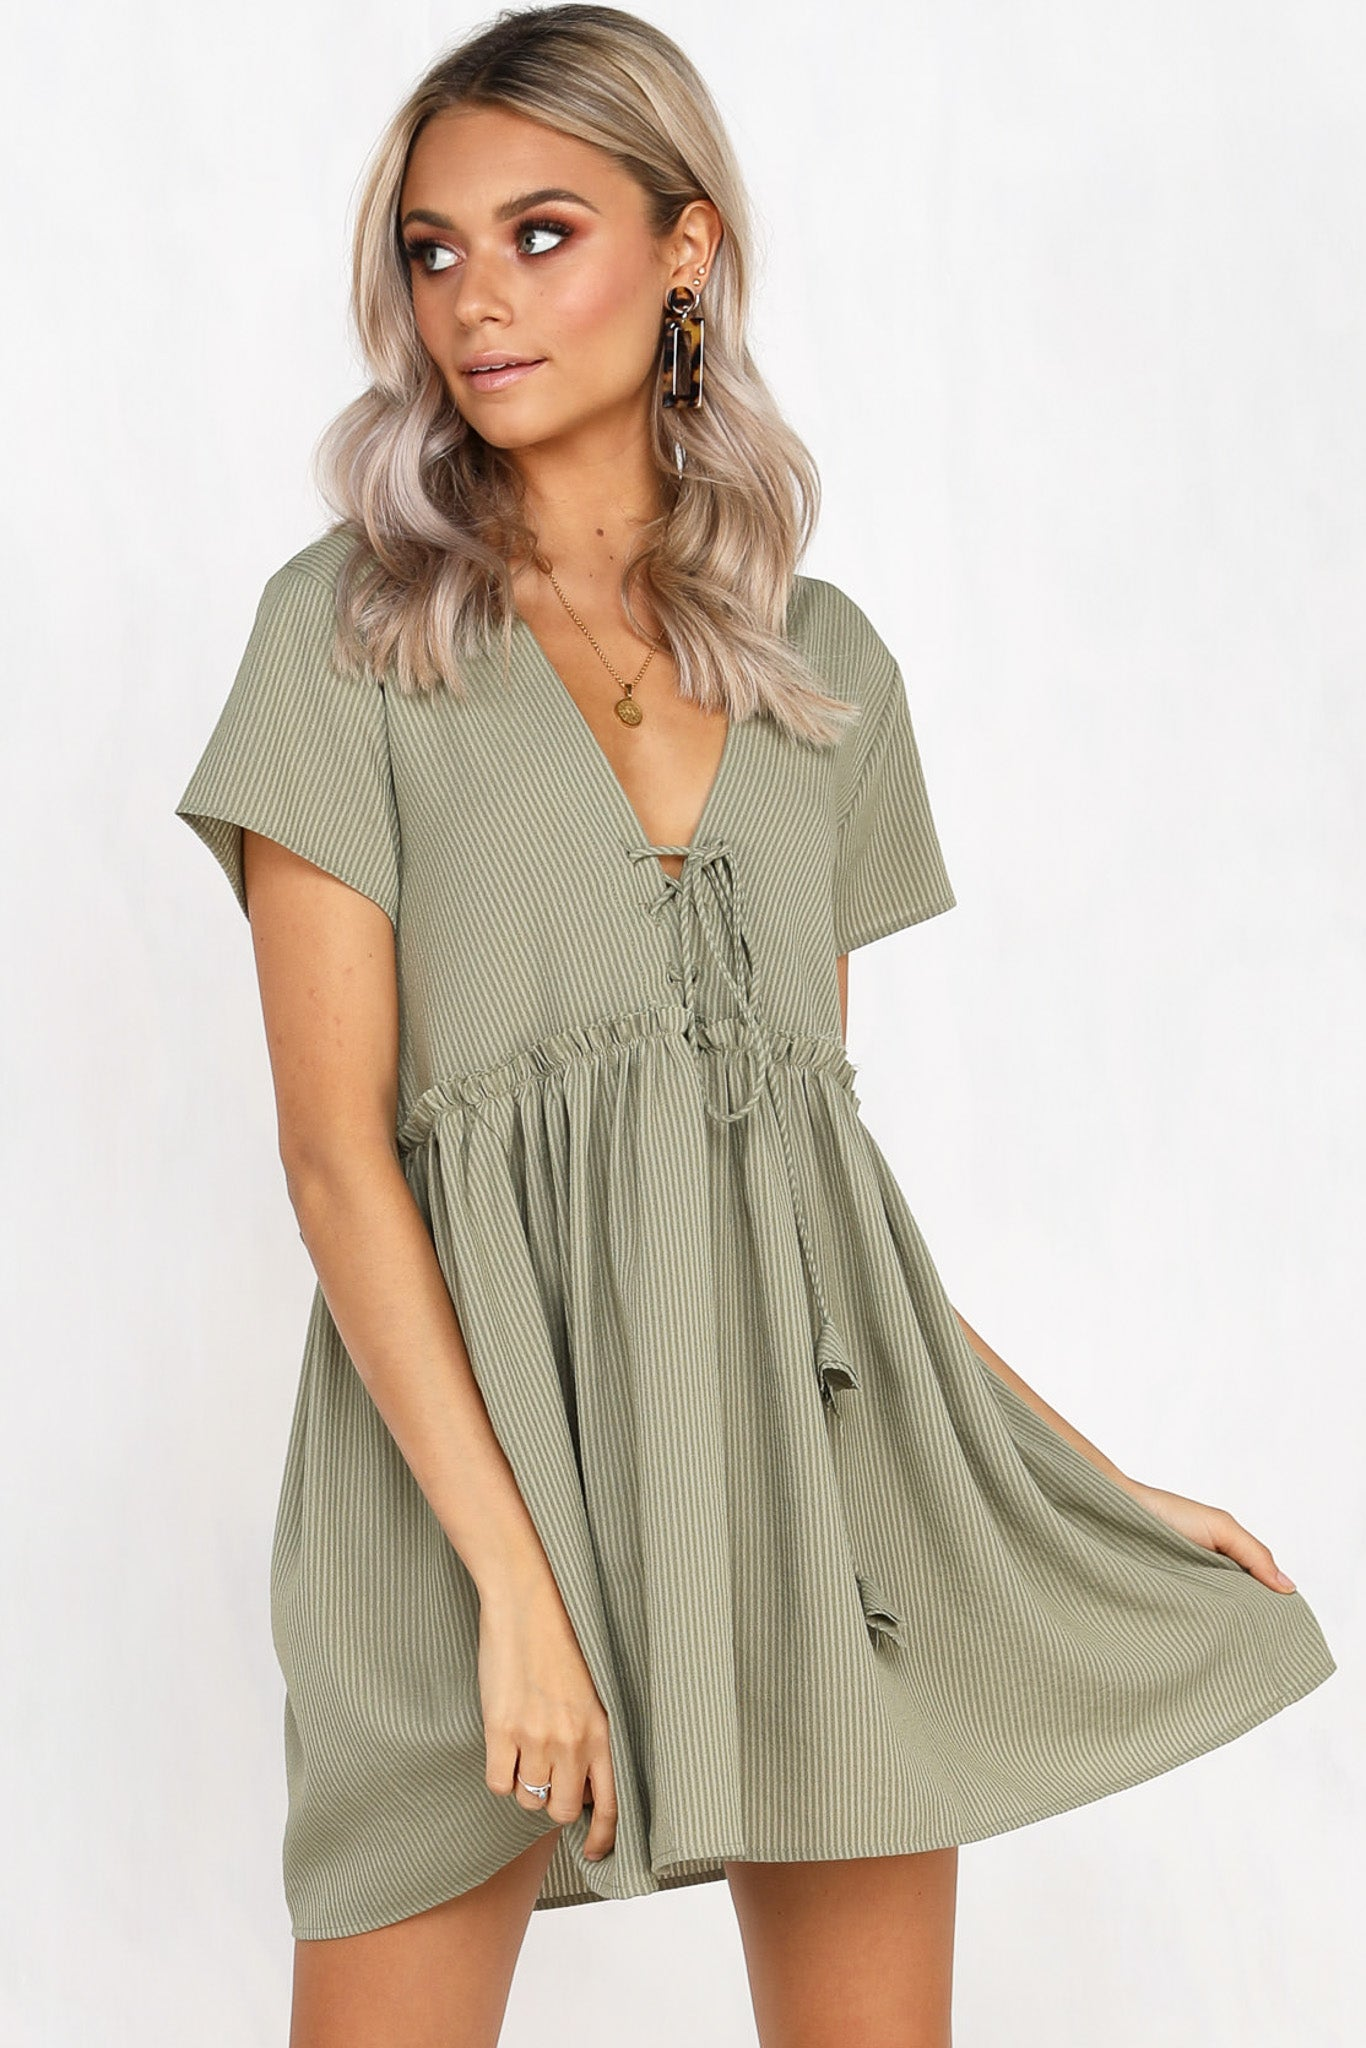 d848a97e62273 Baby Face Dress (Olive) – RunwayScout